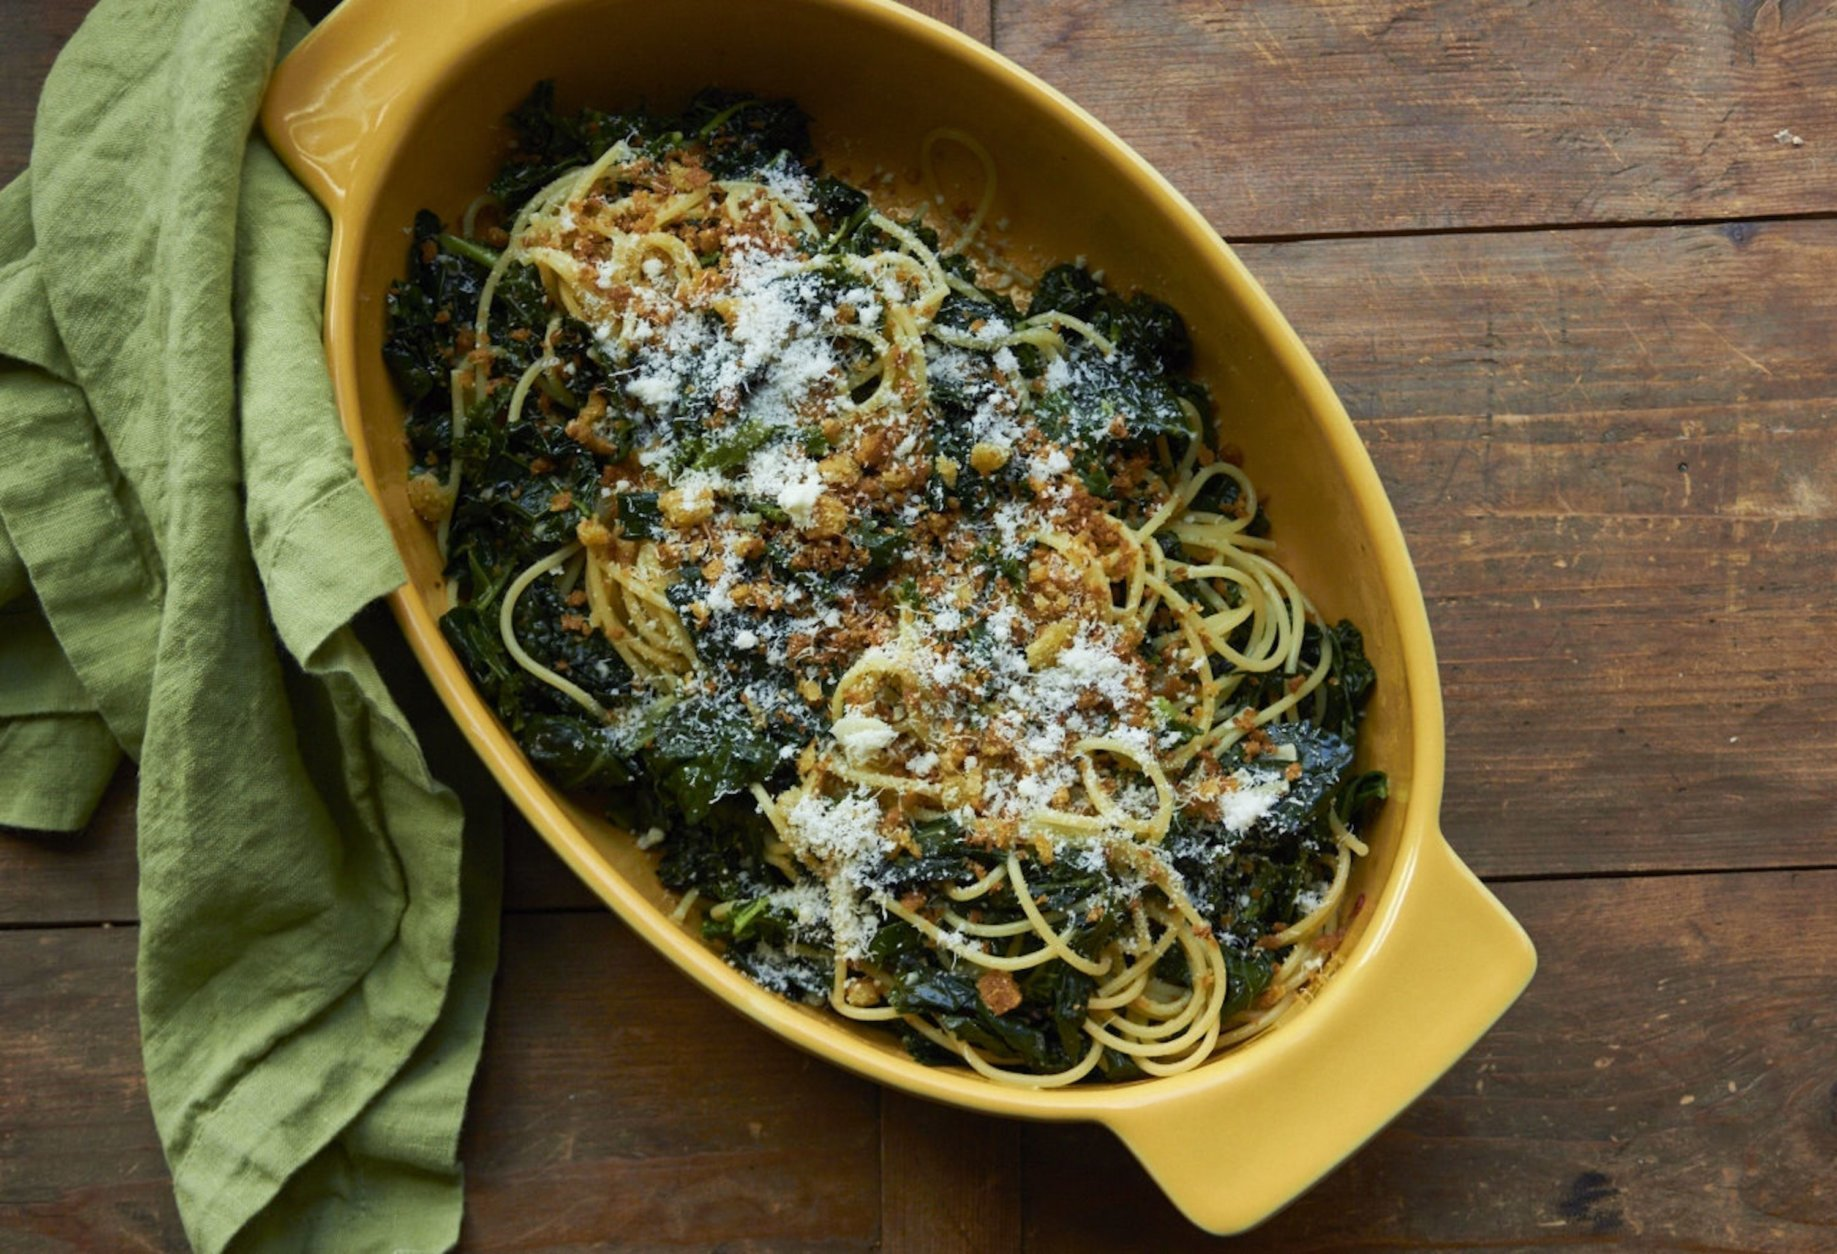 This January 2017 photo shows pasta with sauteed kale and toasted bread crumbs in New York. This dish is from a recipe by Katie Workman. (Mia via AP)